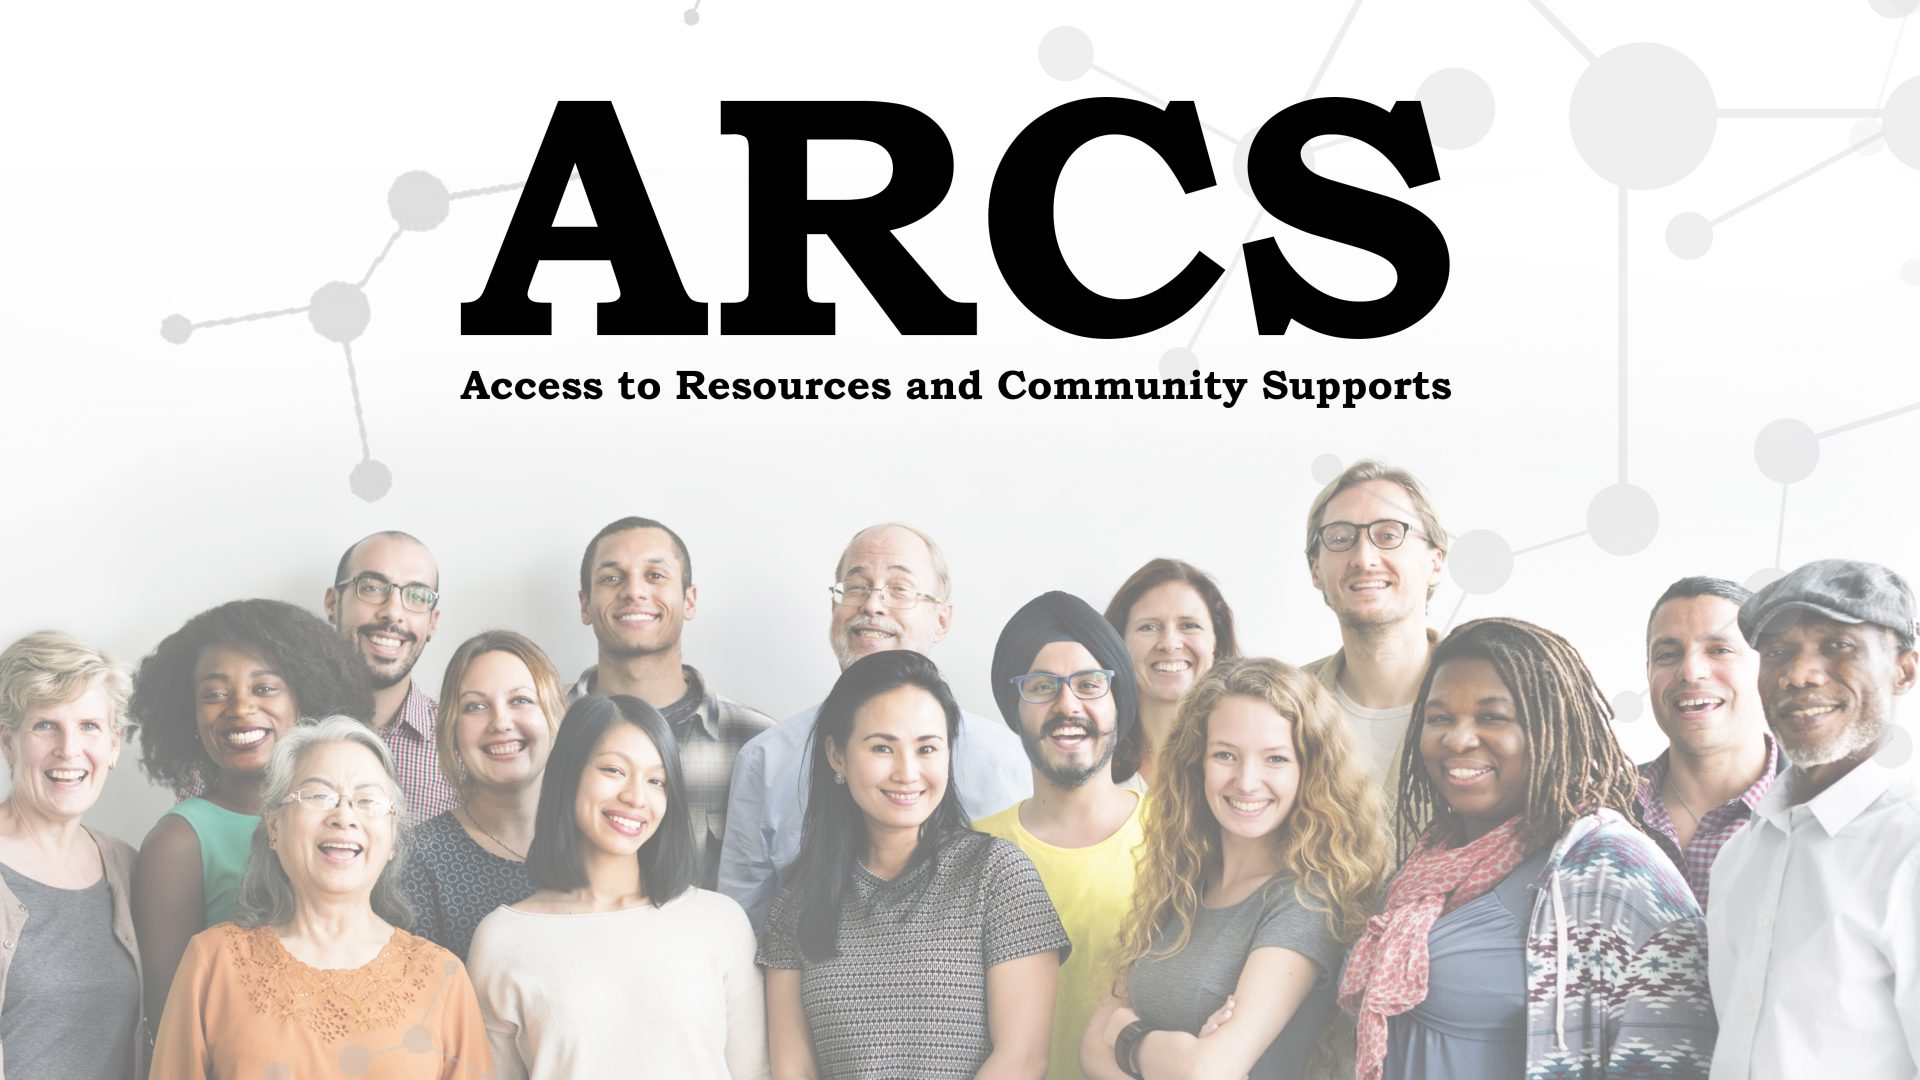 Access to Resources and Community Supports banner with photo of group of diverse people